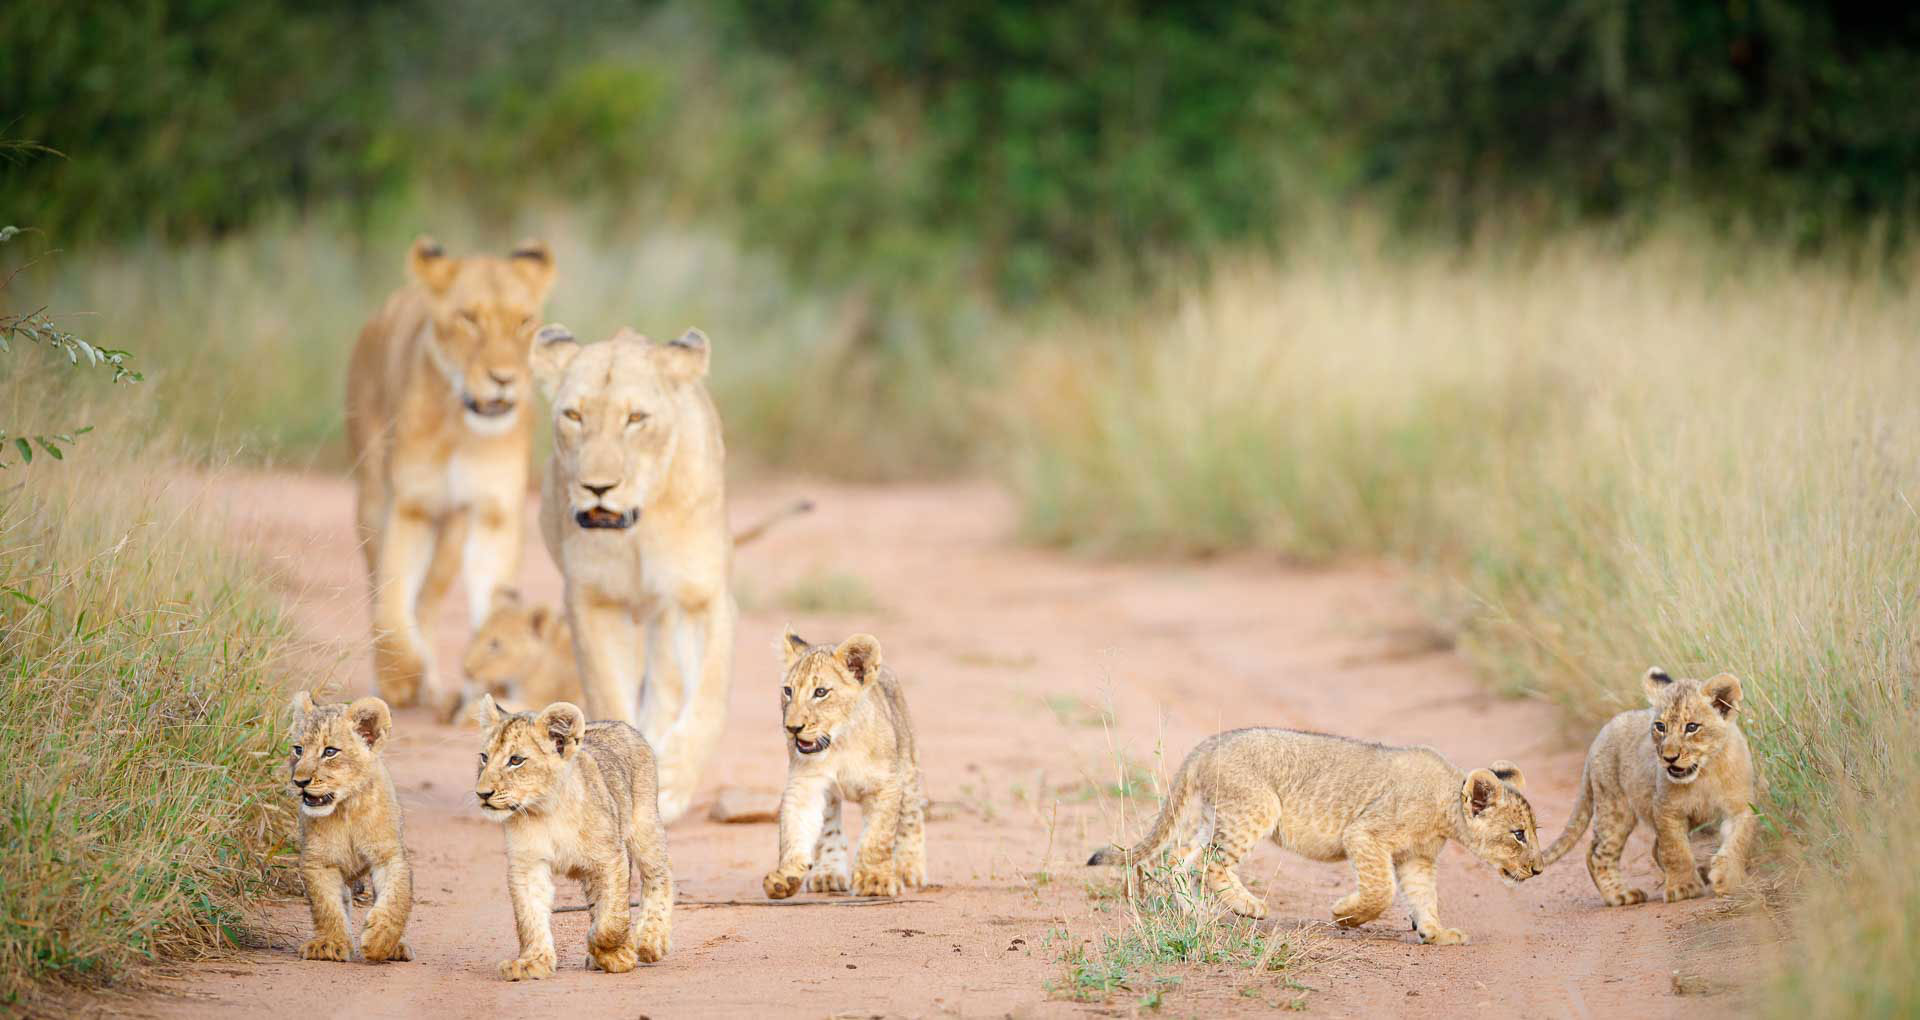 Tanda Tula - lioness' and cubs on safari in the Greater Kruger